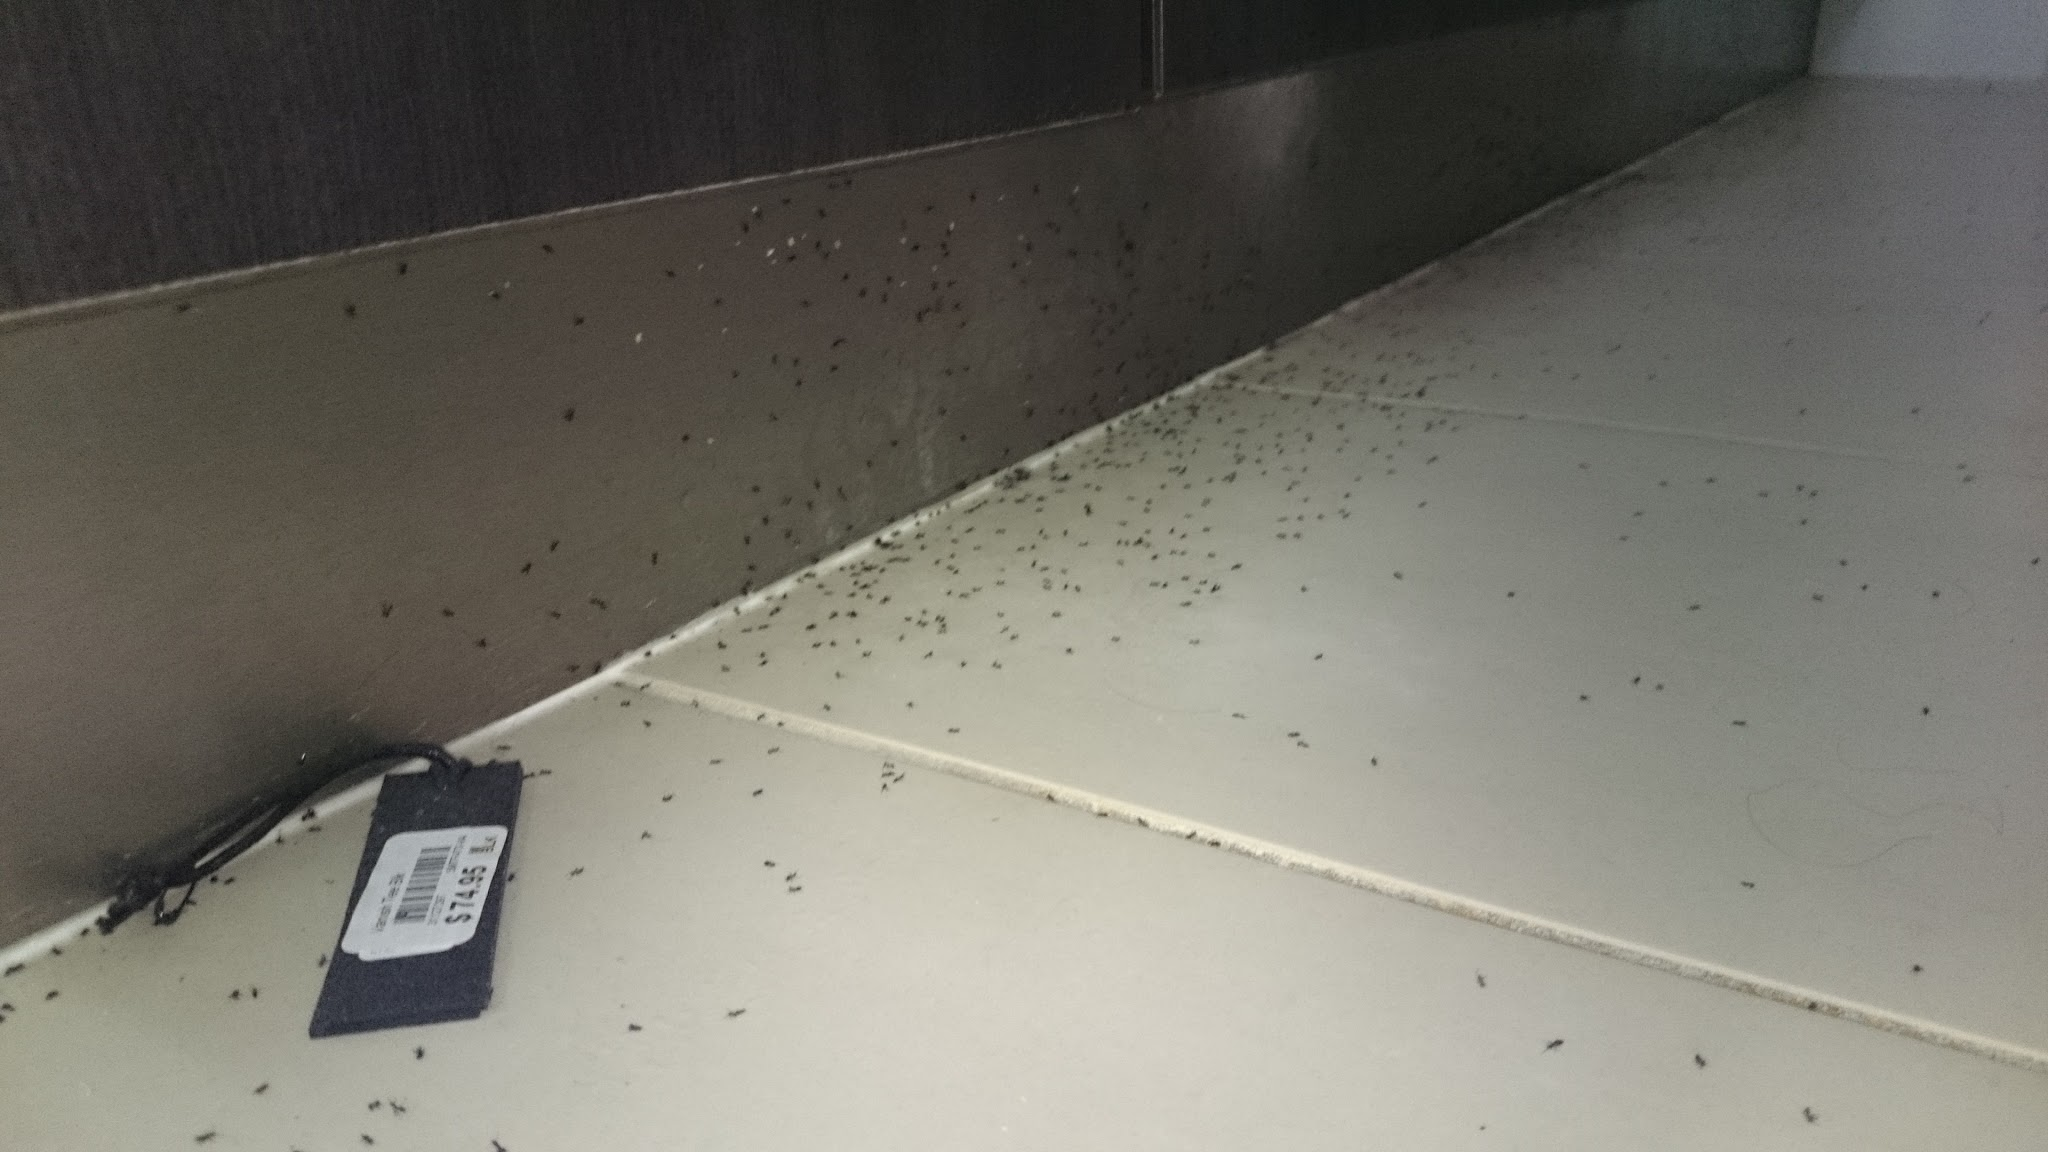 this client had some ants coming through the bathroom widow, but the ants were hiding under the cabinettes kickboards to get out of the rain